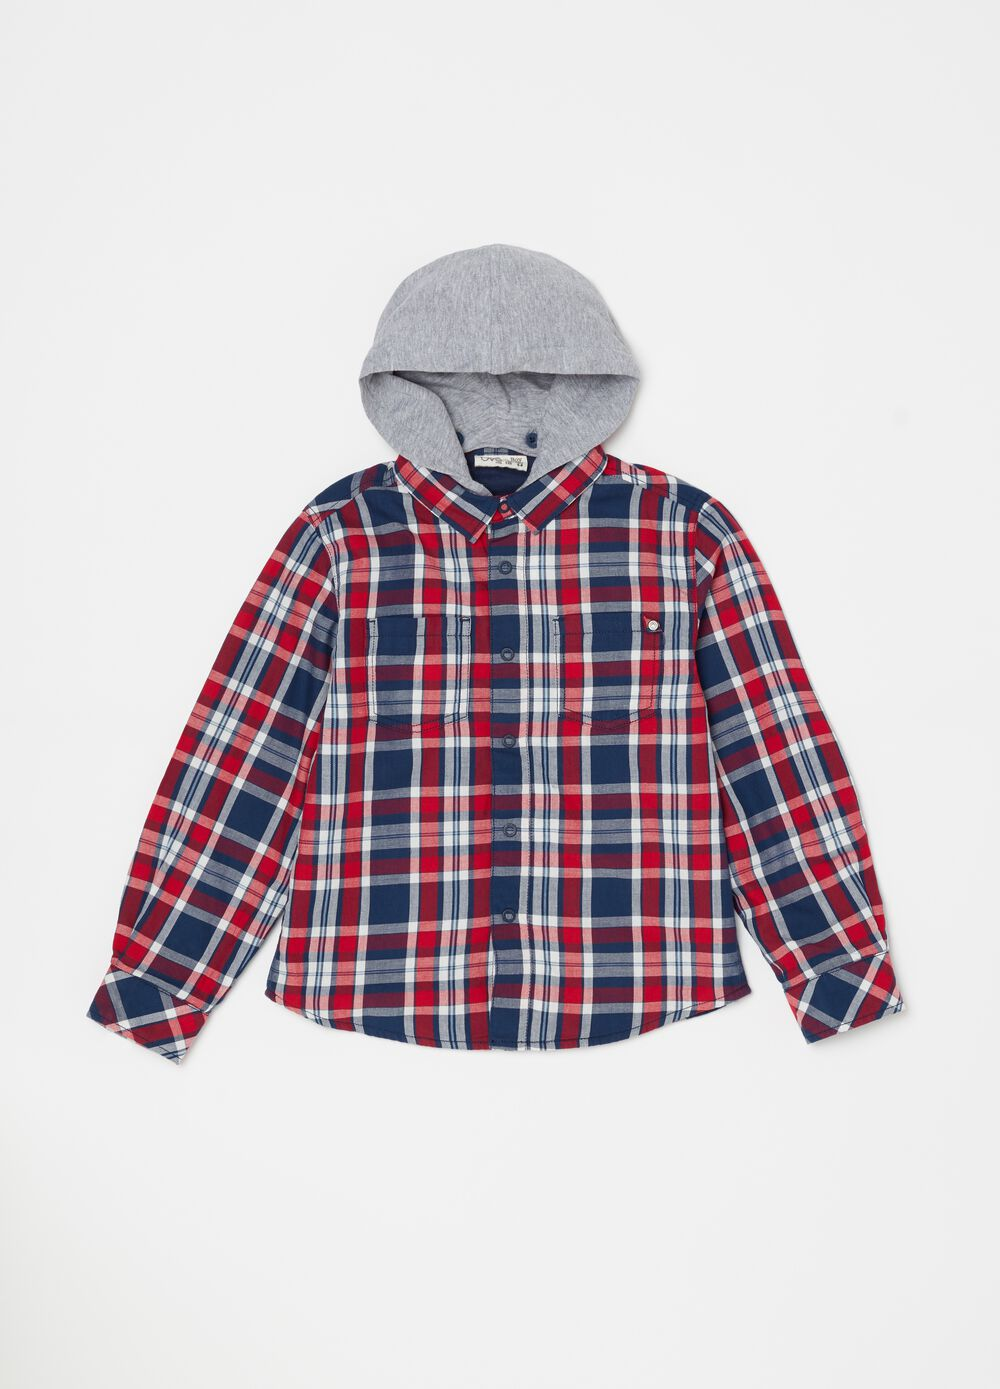 100% cotton shirt with hood